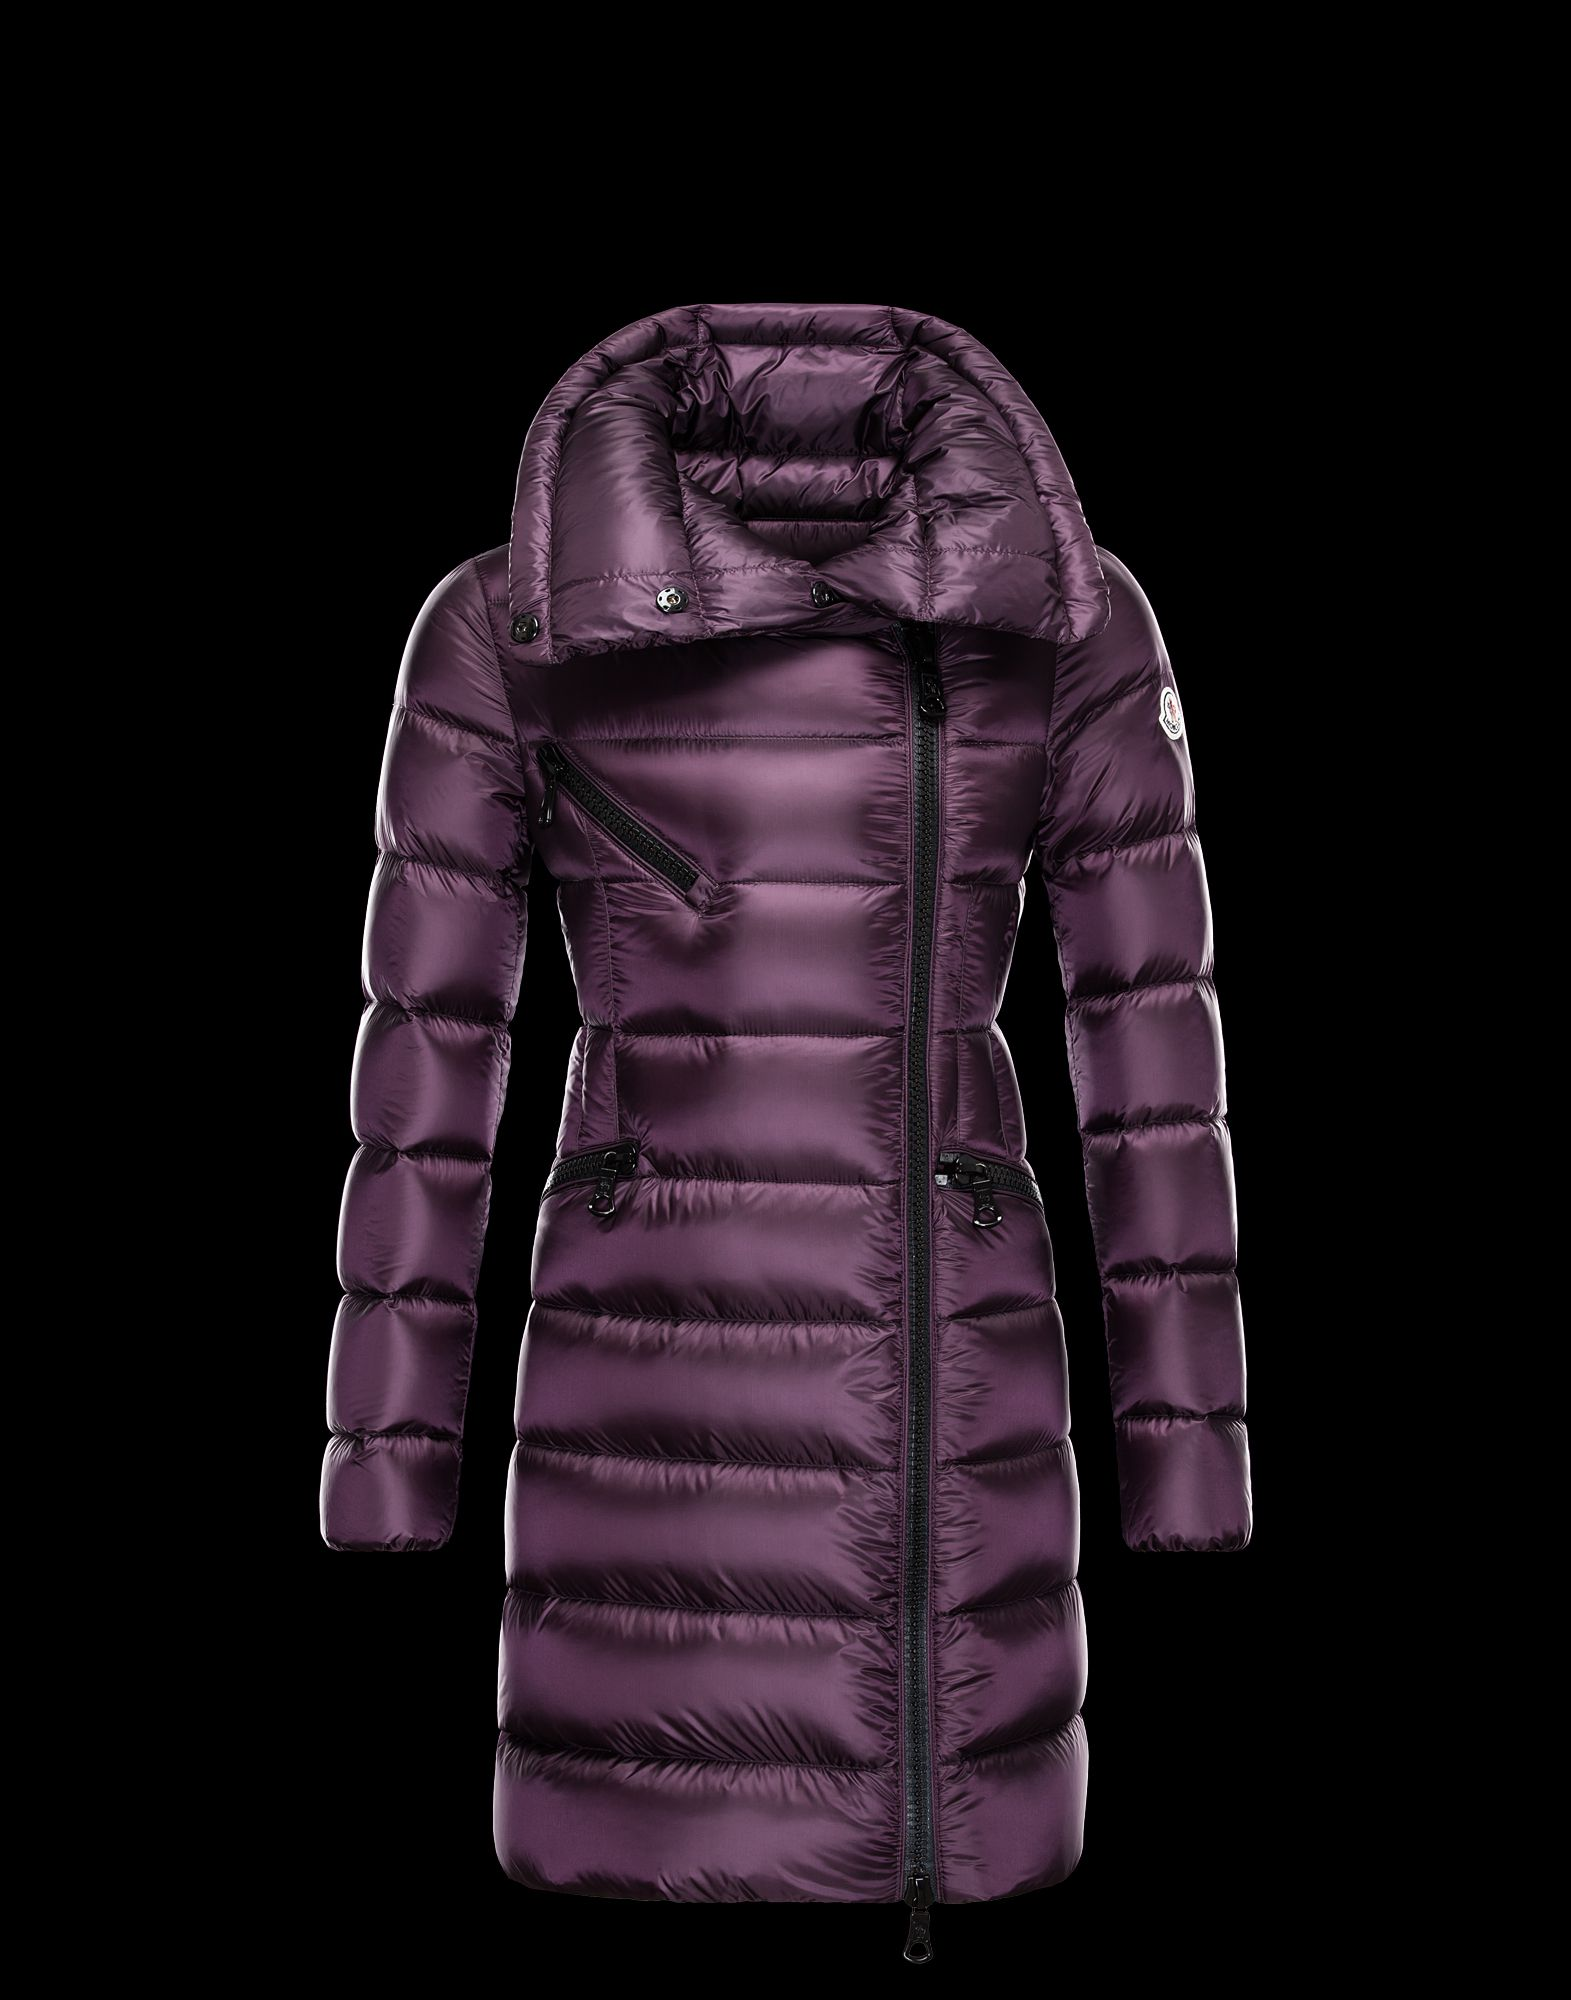 Moncler FLOWERS long purple violet